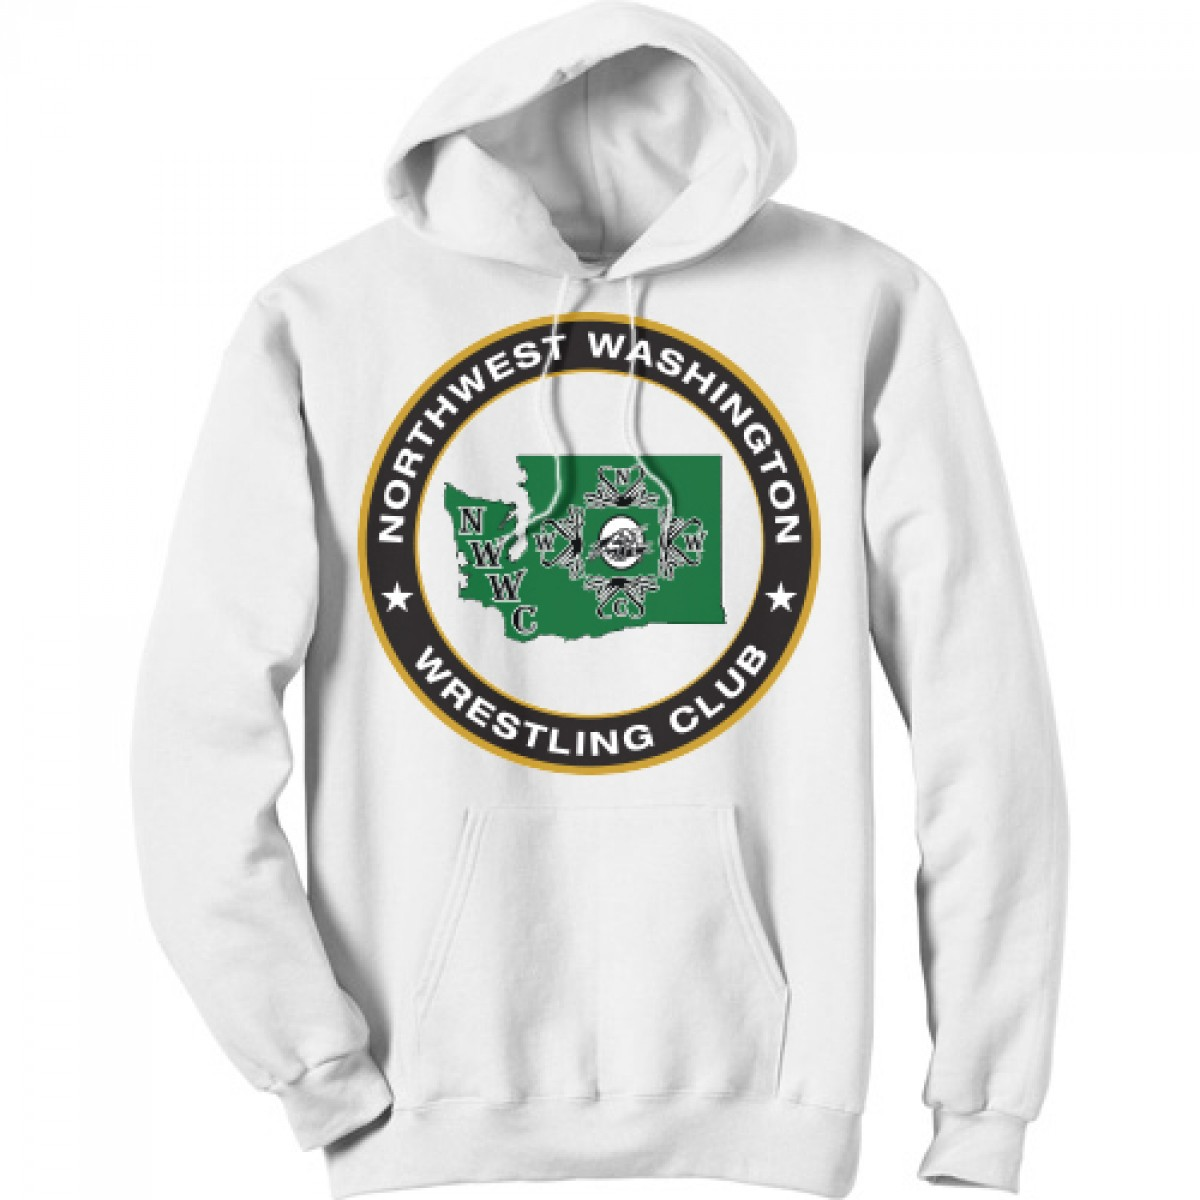 NWWC White Hoodie With Green Logo-White-M